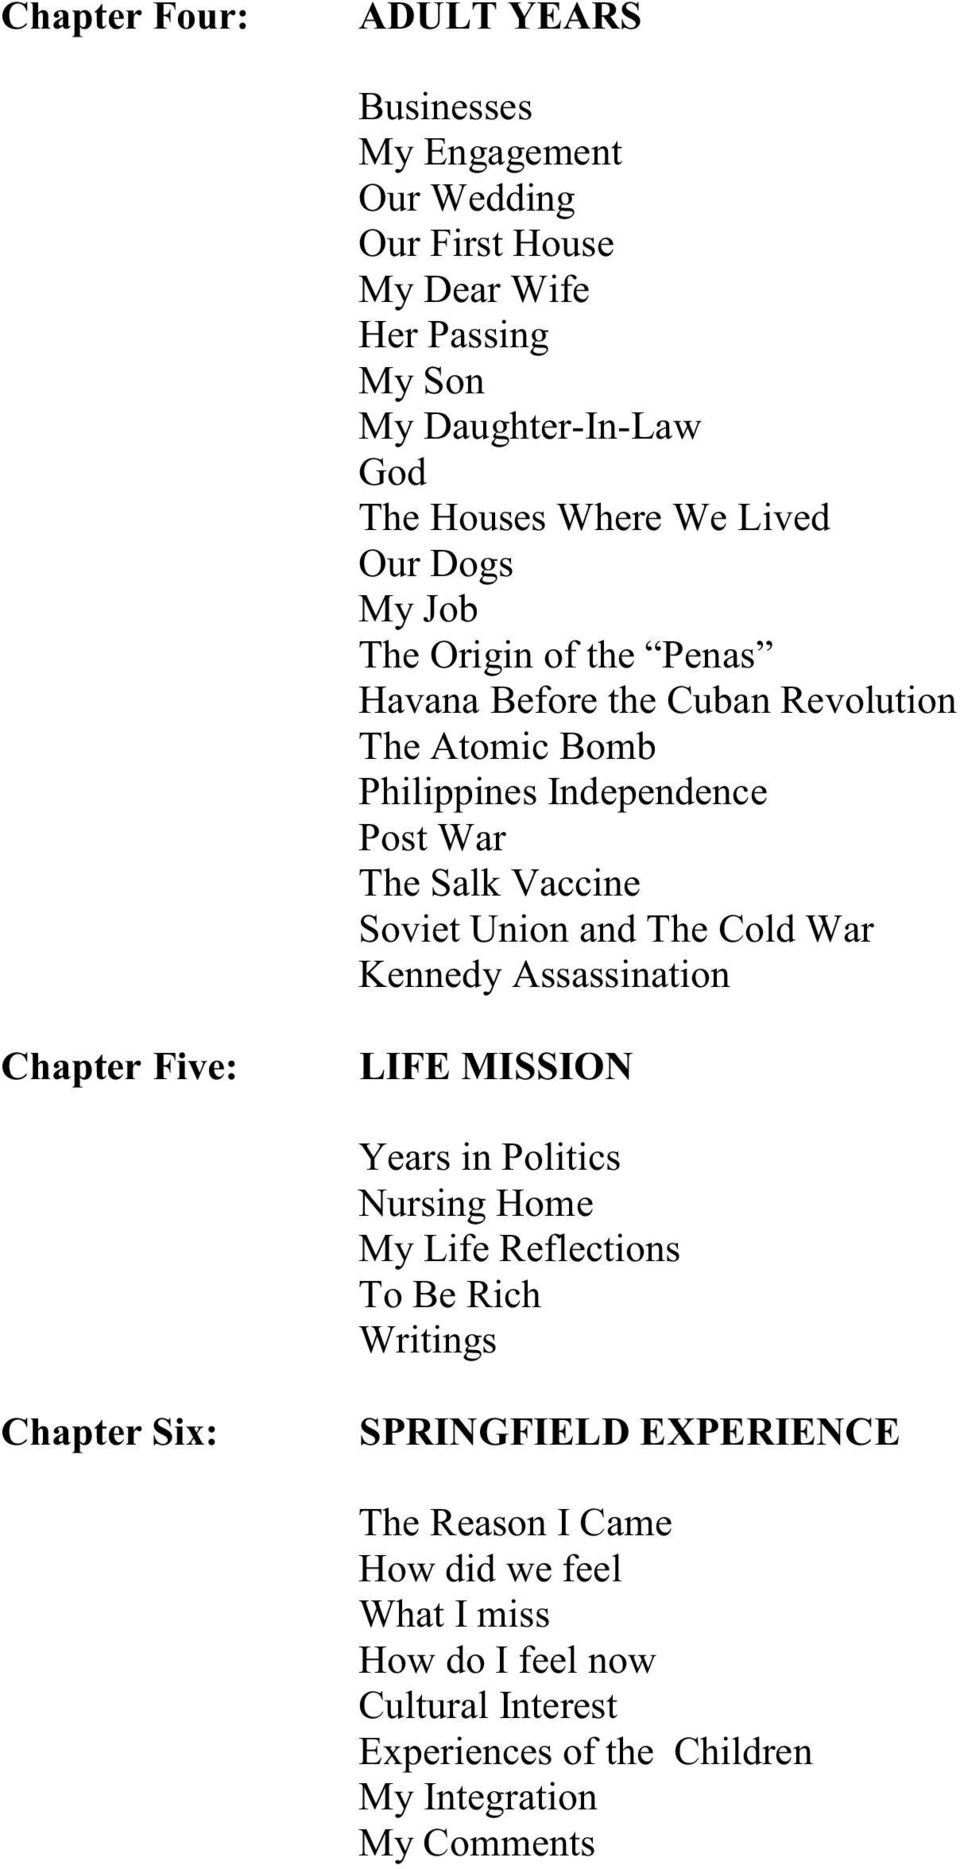 Union and The Cold War Kennedy Assassination Chapter Five: LIFE MISSION Years in Politics Nursing Home My Life Reflections To Be Rich Writings Chapter Six: